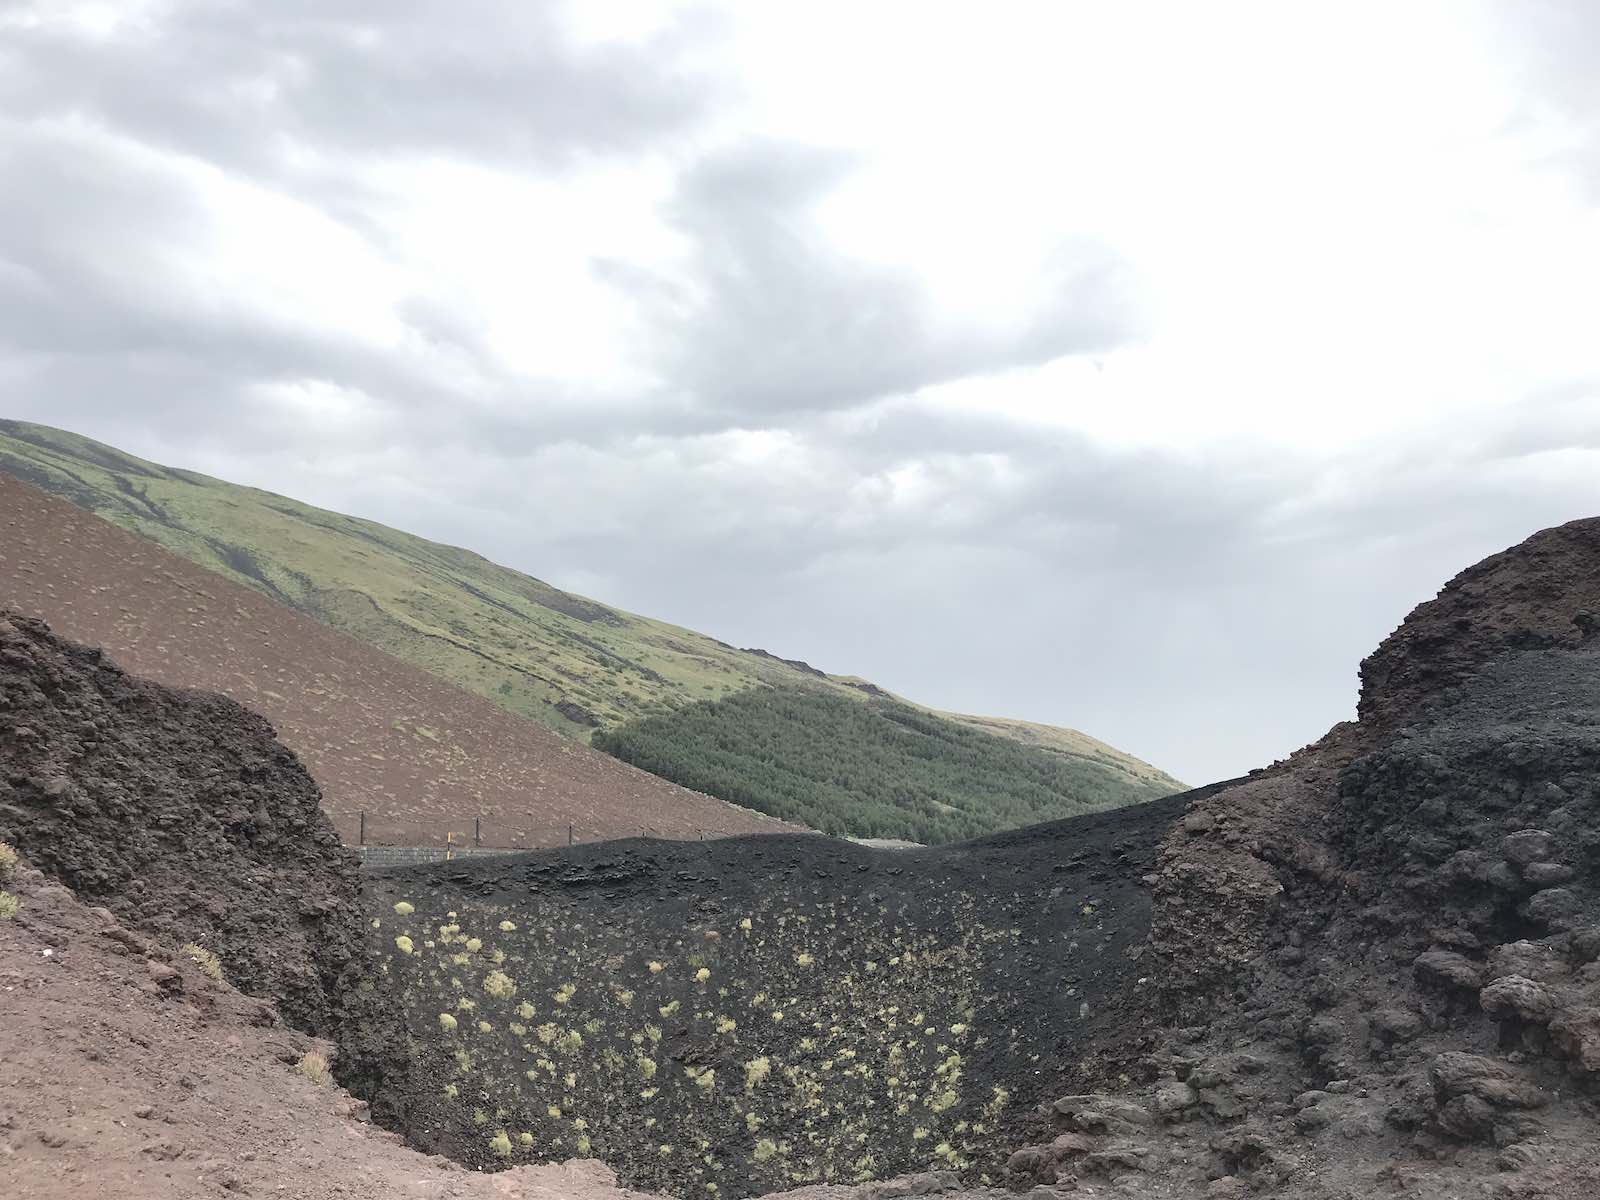 Exploring the craters at Silvestri